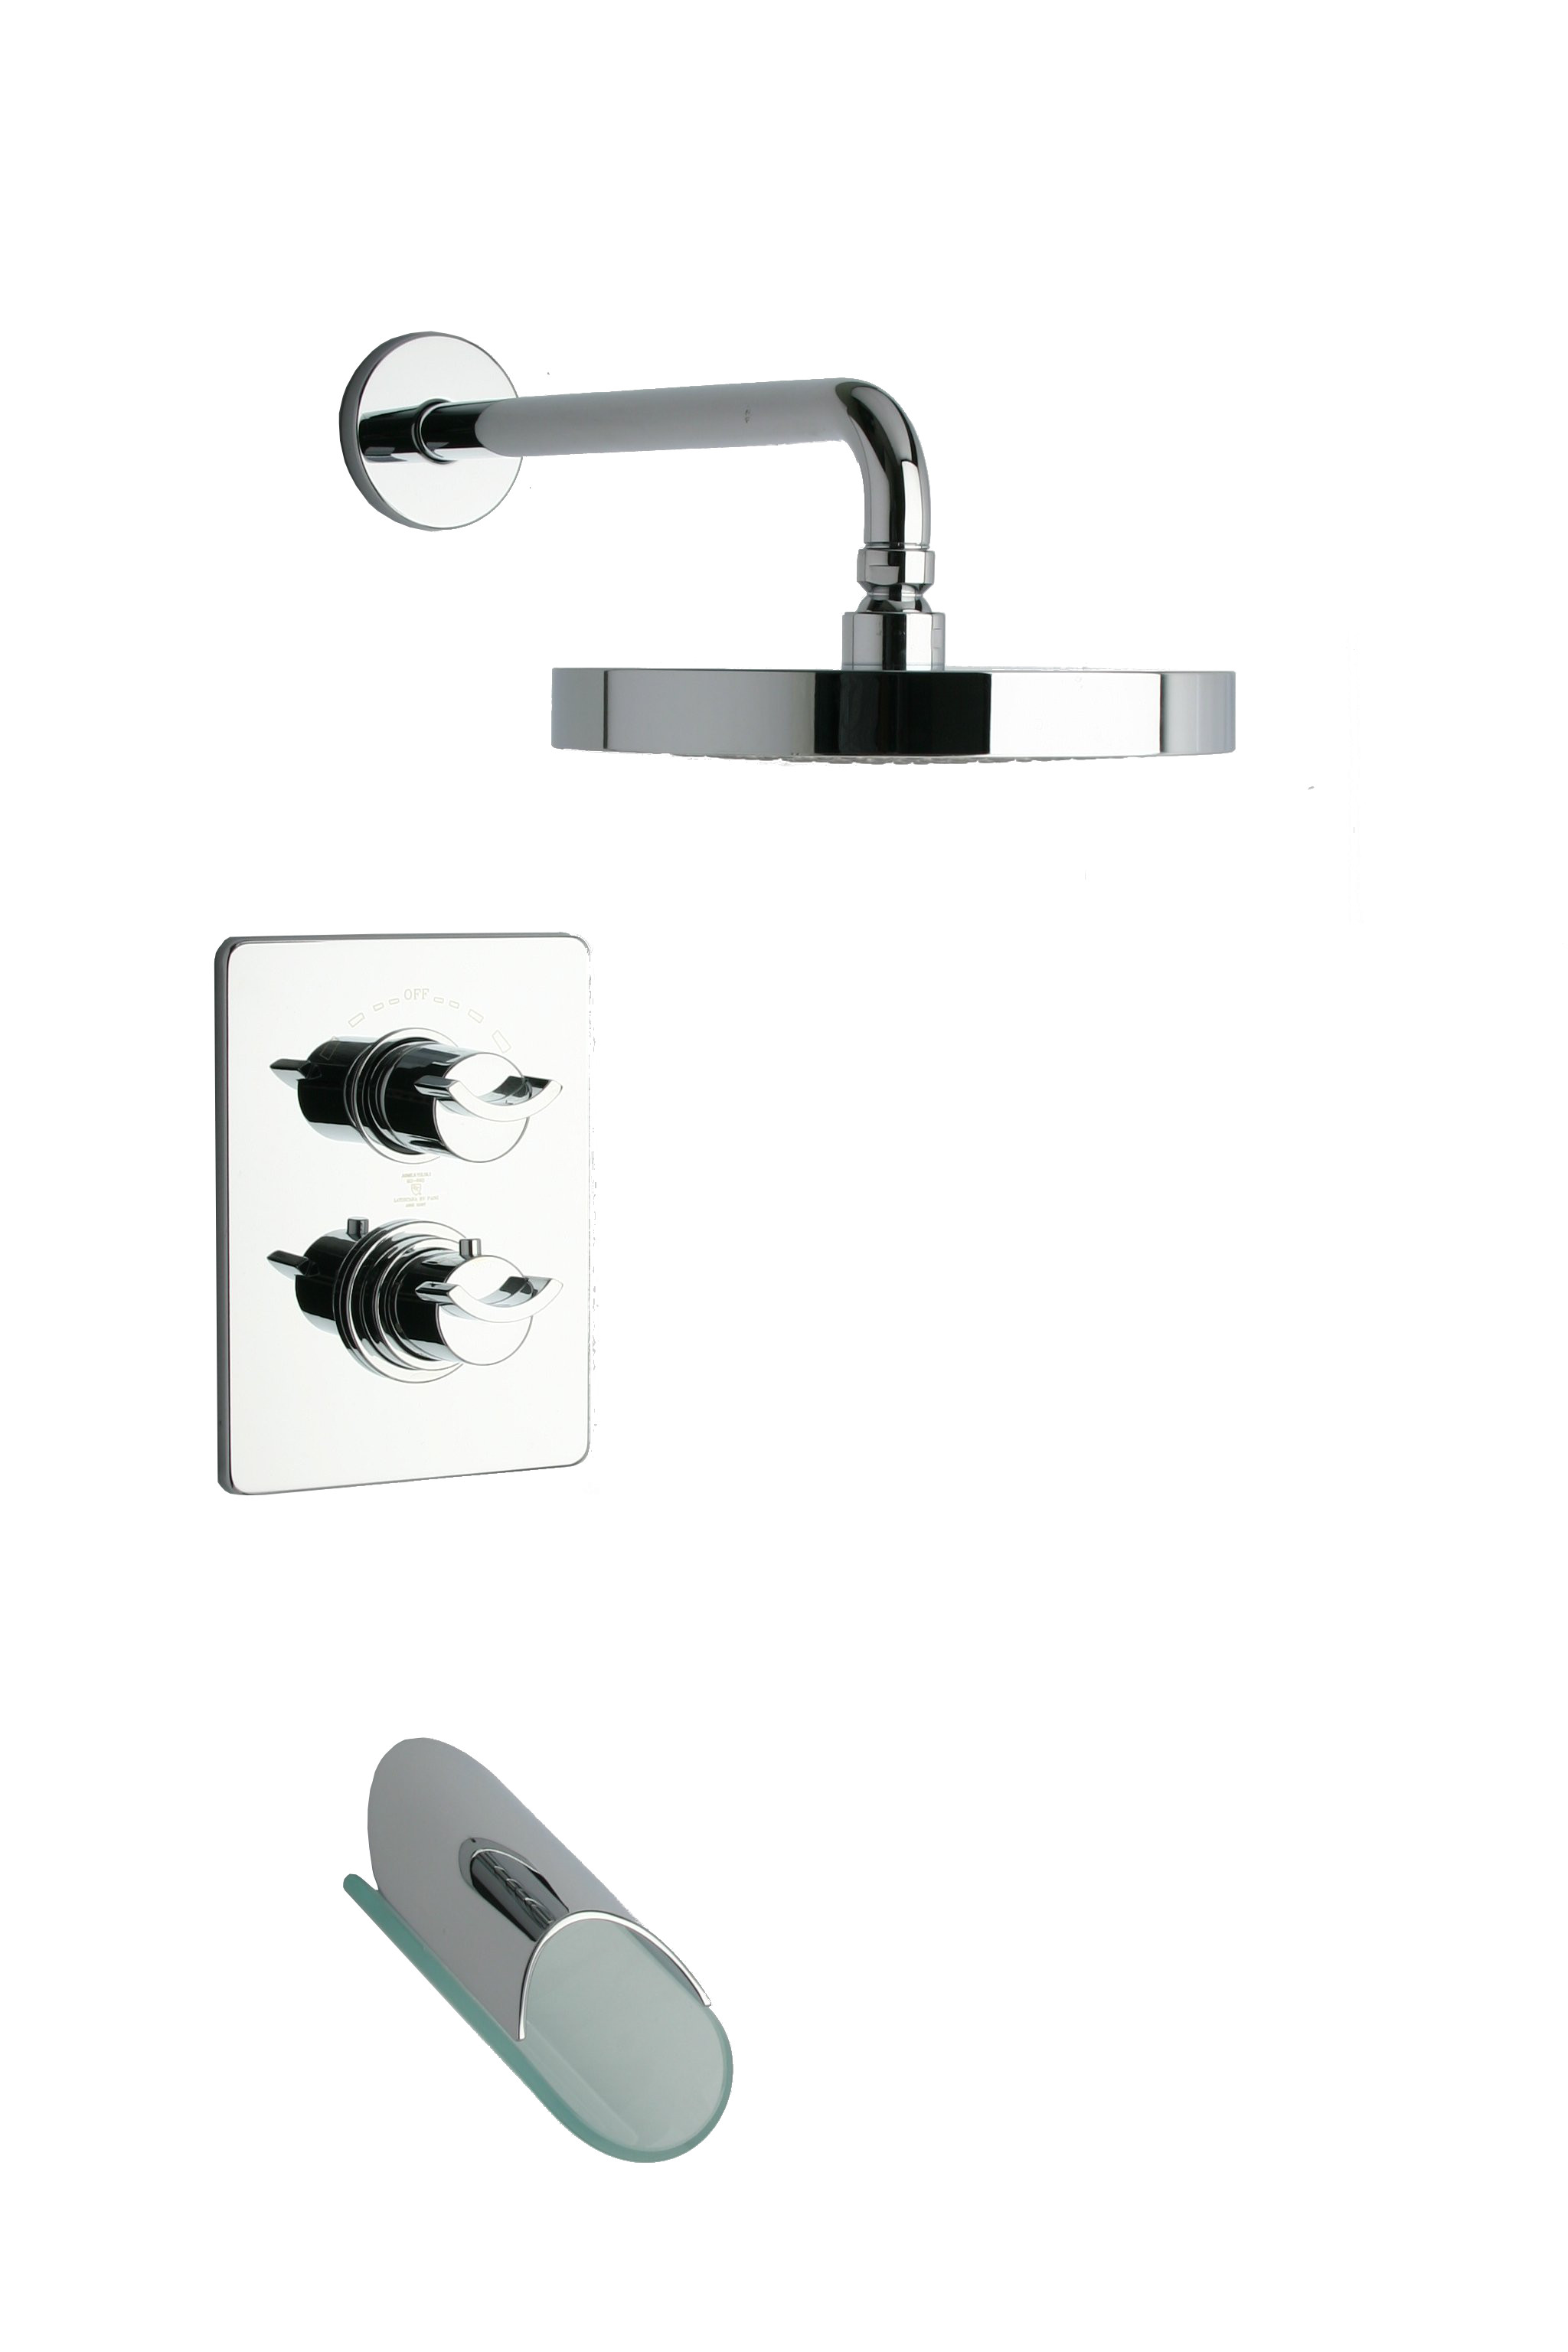 faucet novello commercial latoscana single toscana la faucets bathroom chrome hole pd shop handle